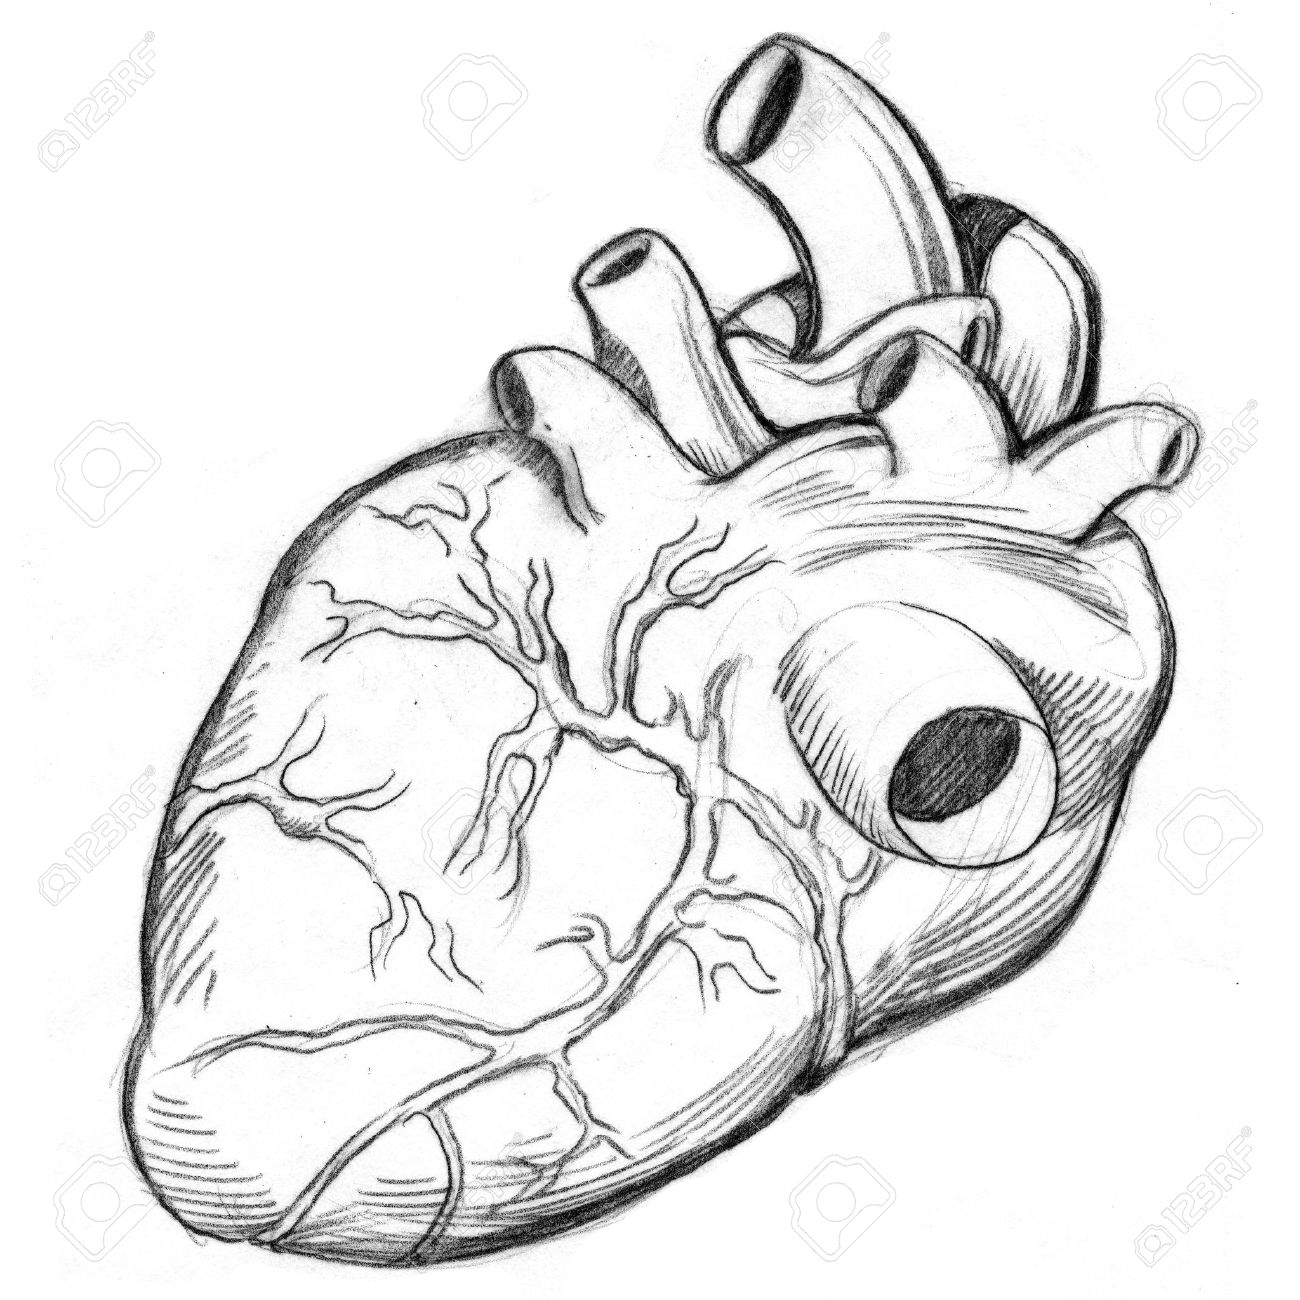 1300x1300 Drawing Of The Human Heart